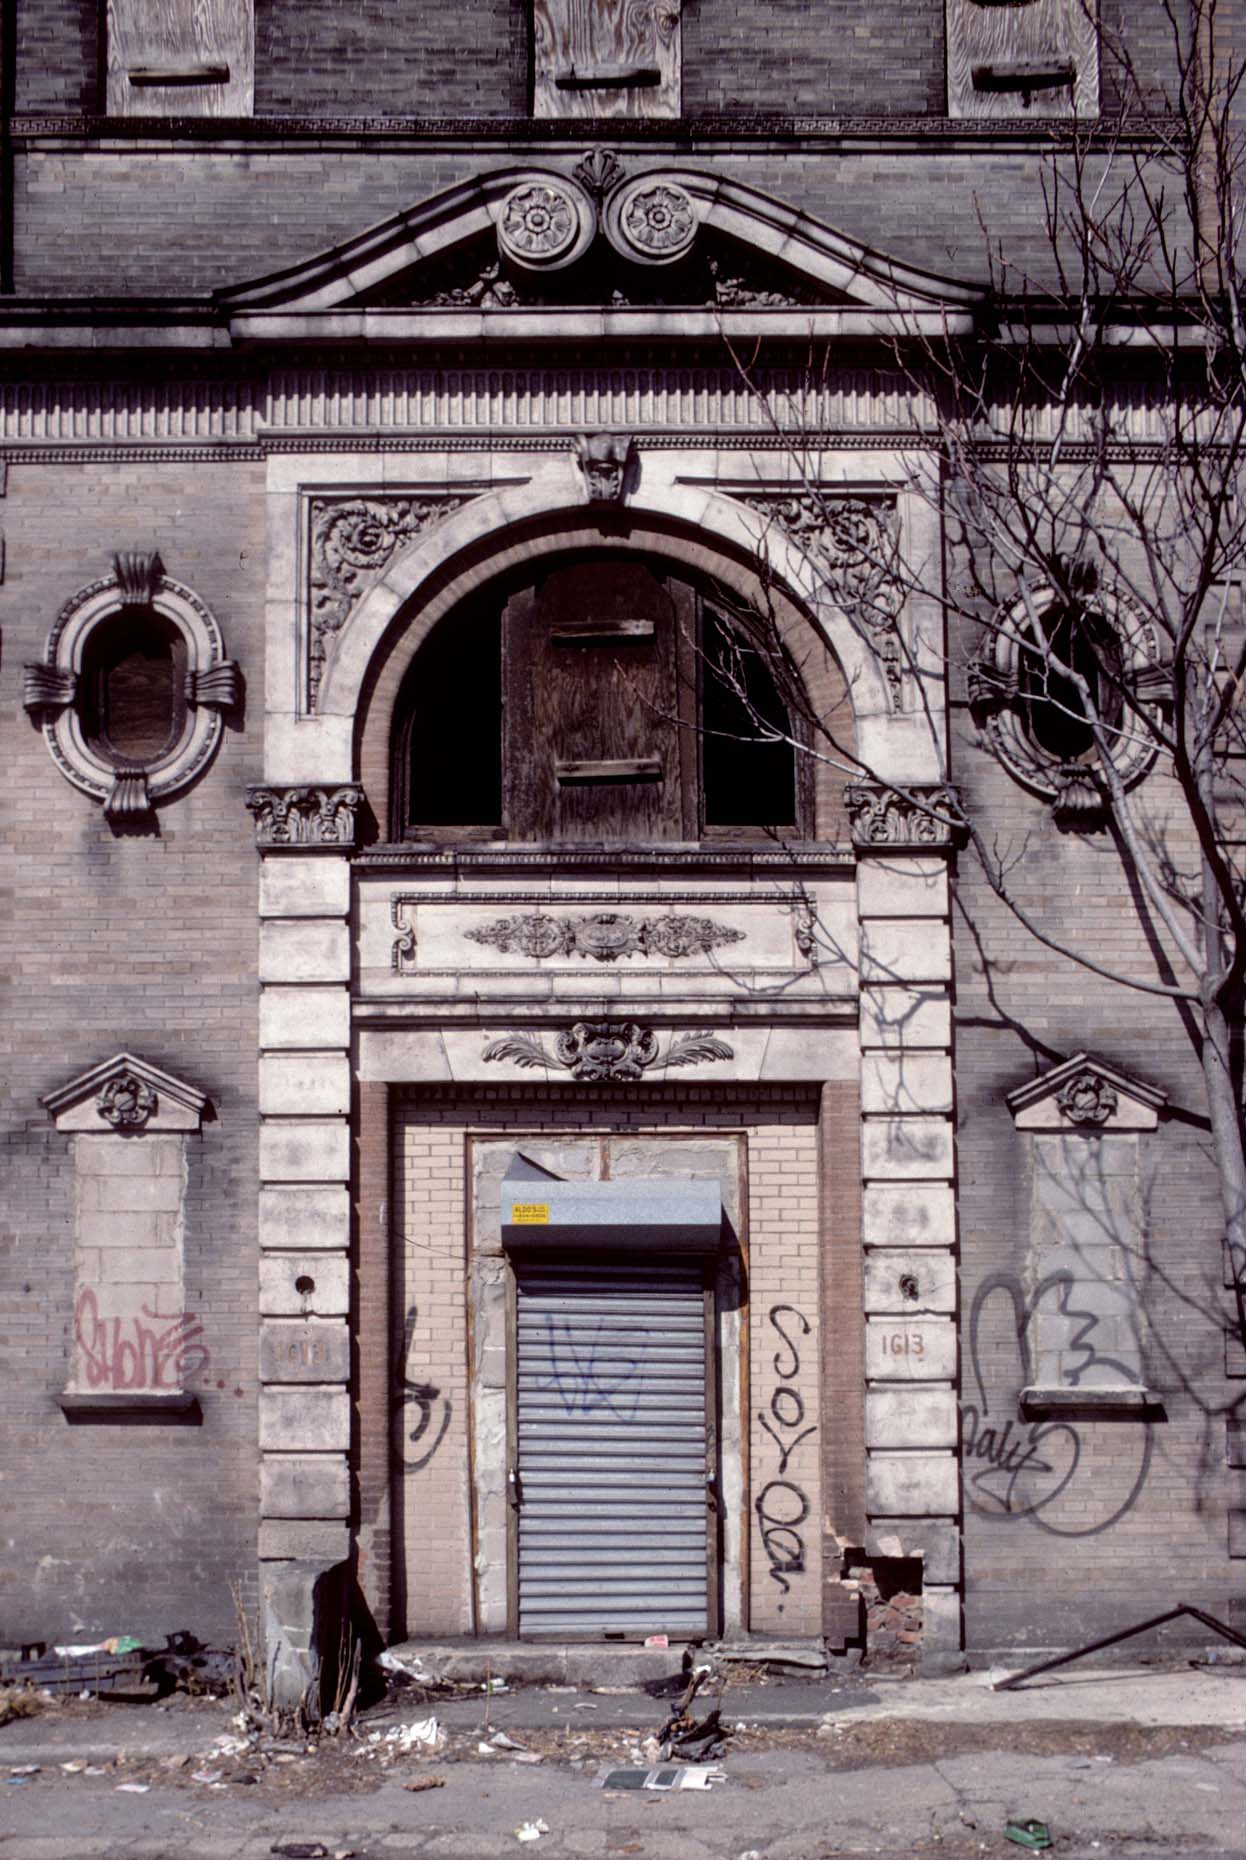 28_1613 East New York Ave-DUP2., Entrance, Brooklyn, 1994_.jpg